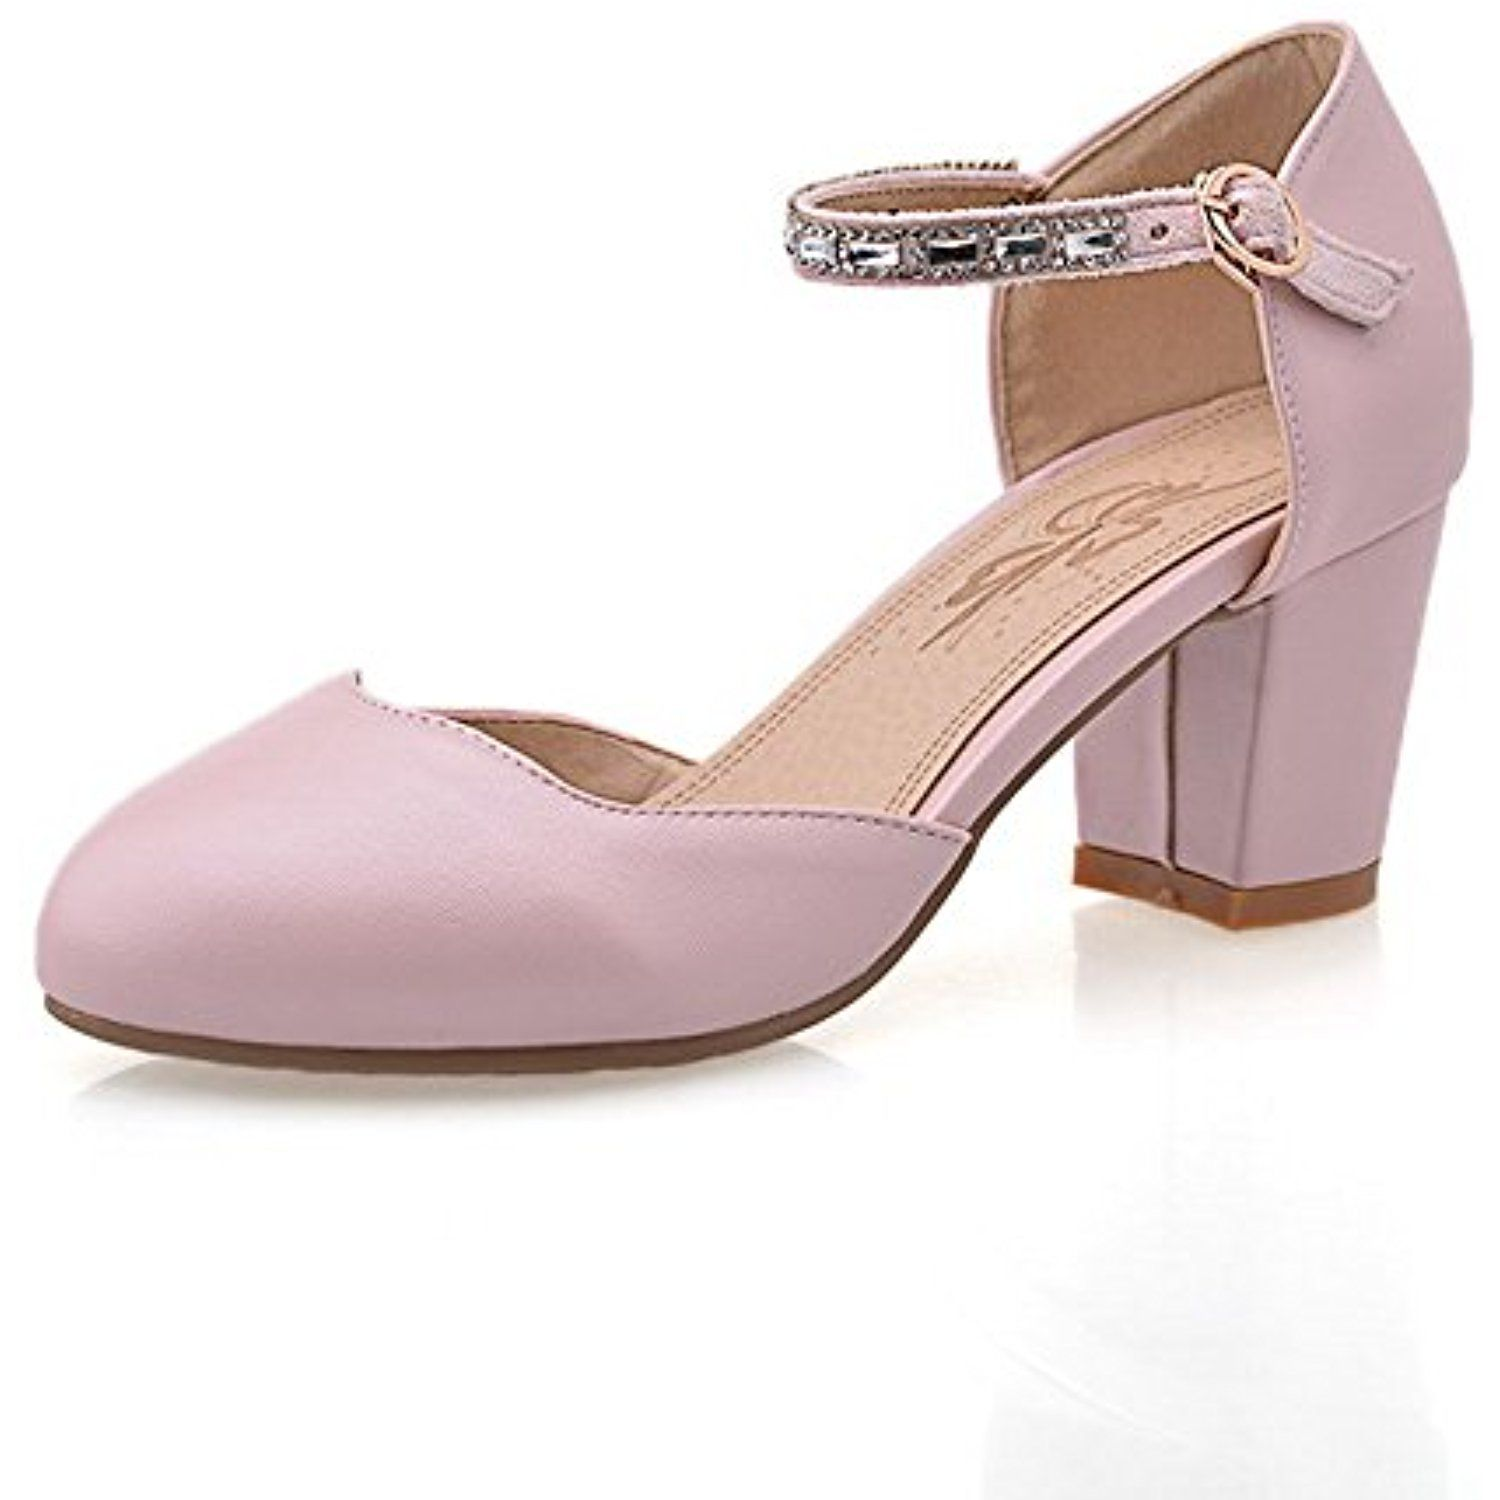 Women's Round Closed Toe High Heels Solid Buckle Pumps Shoes